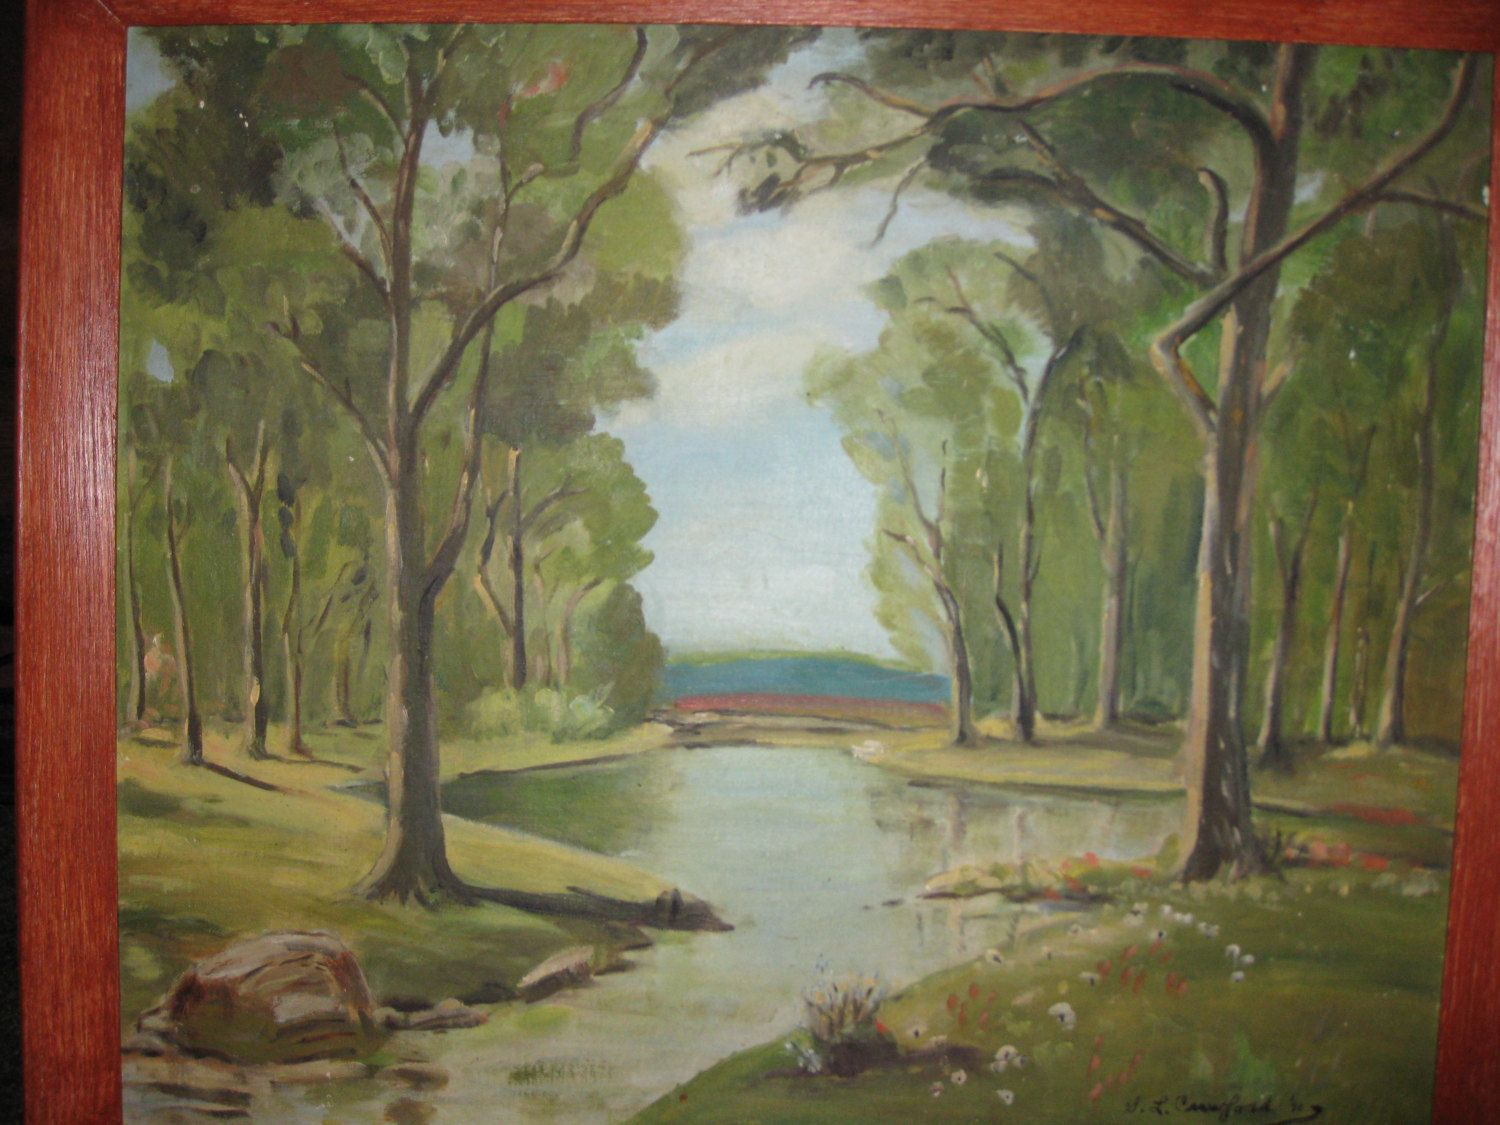 Original painting on canvas board signed by sl crawford